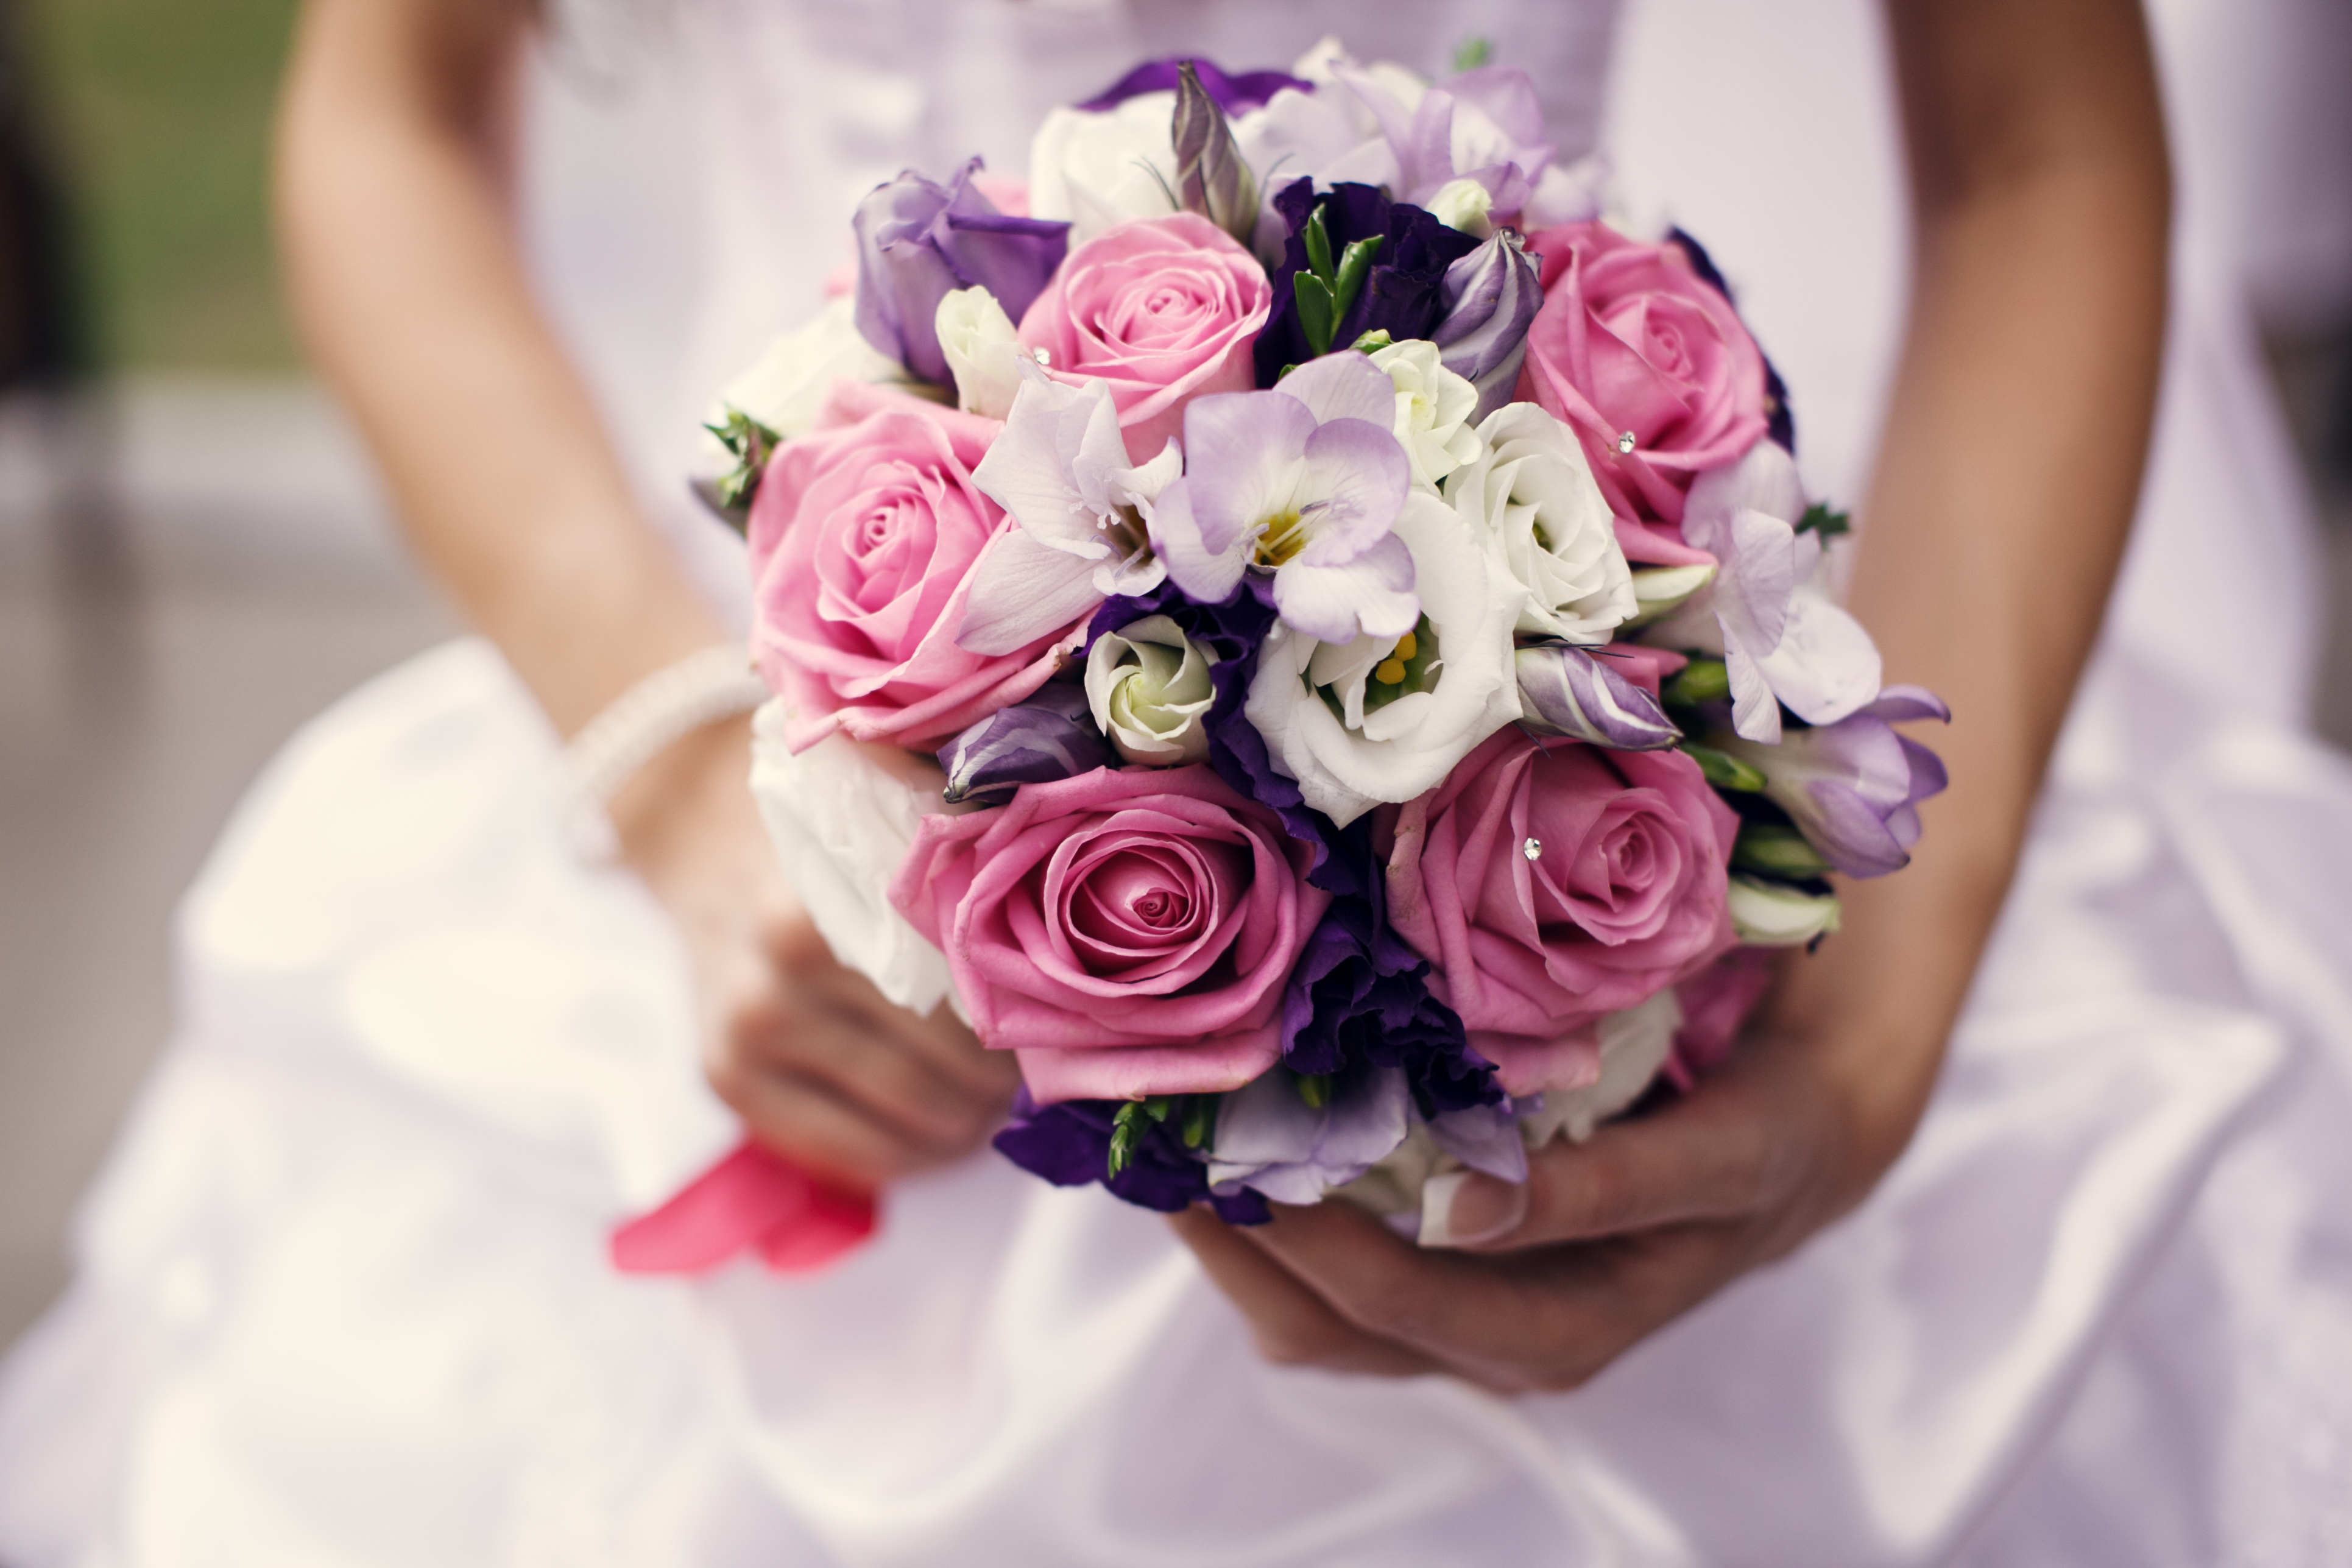 bridal bouquet wedding bouquet Find Out What Your Wedding Bouquet Says About You